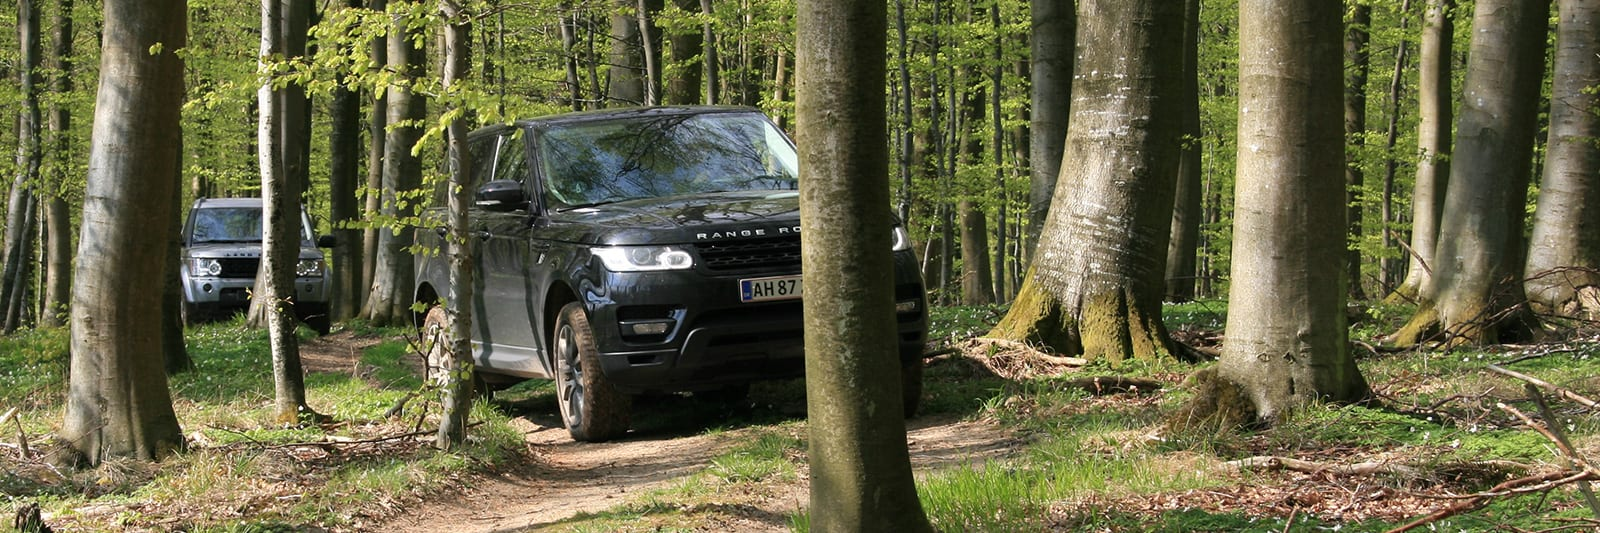 Land Rover Driving Experience Danmark